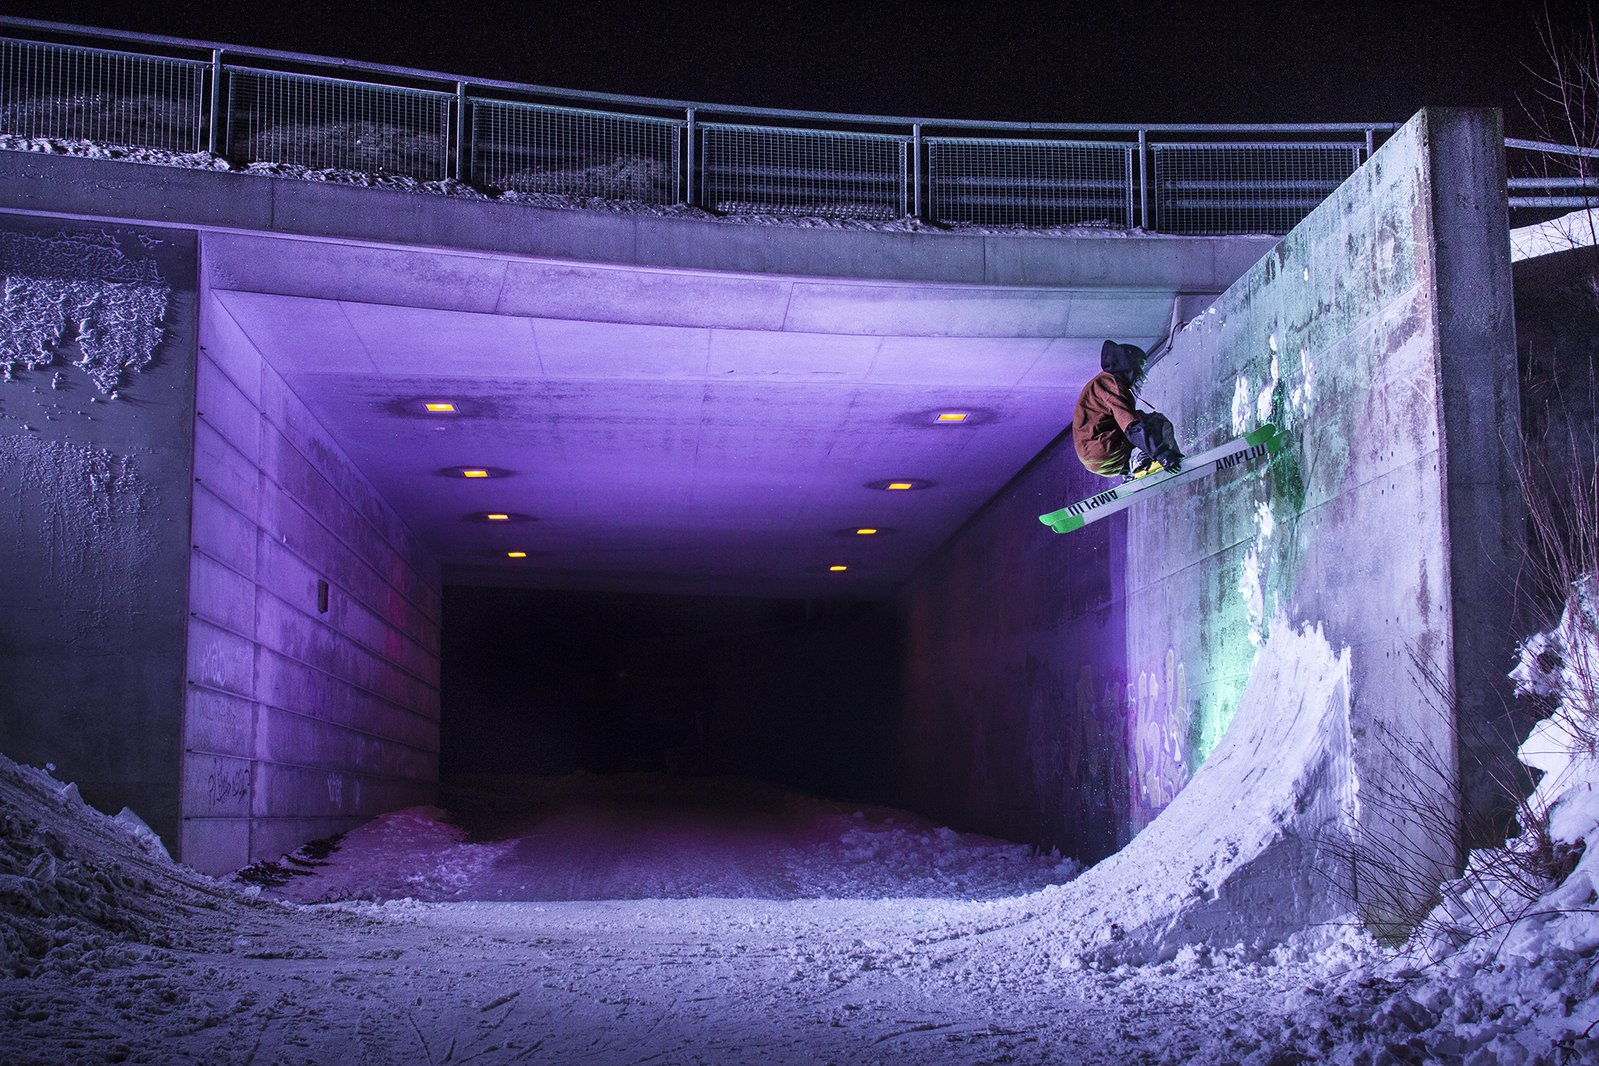 Kevin Salonius @ Wallride